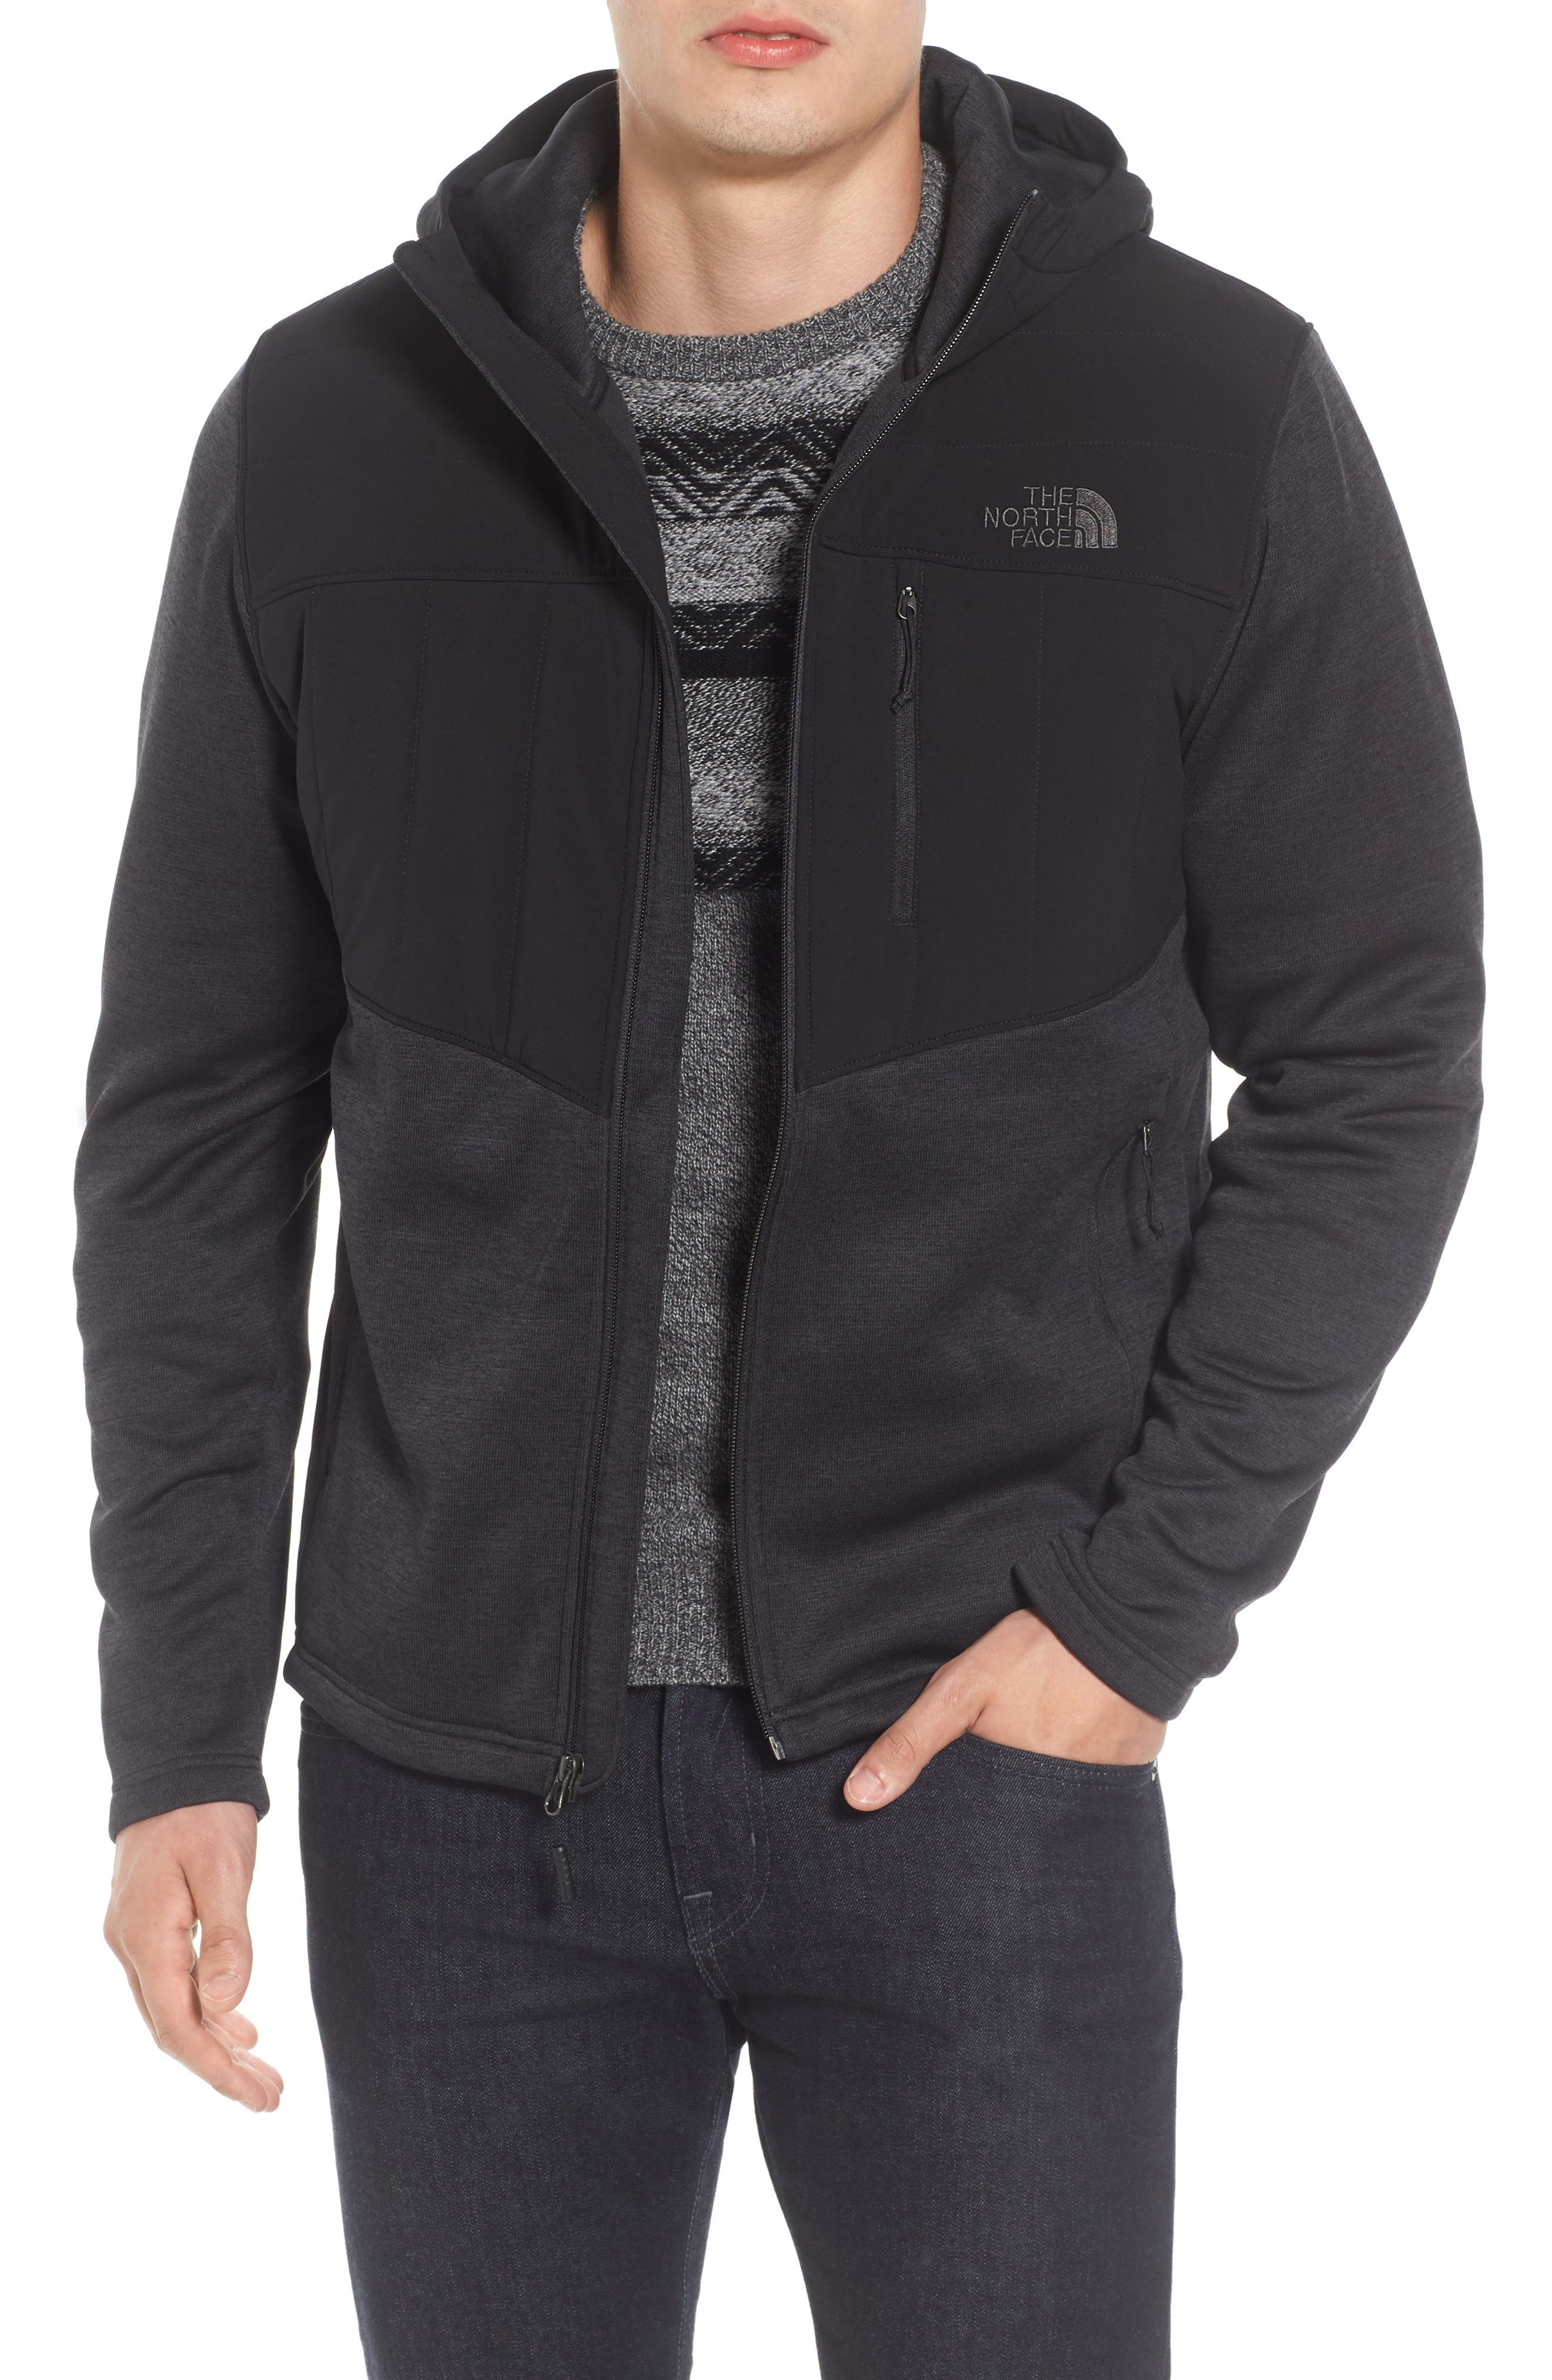 Alternate Image 1 Selected - The North Face Norris Insulated Fleece Jacket